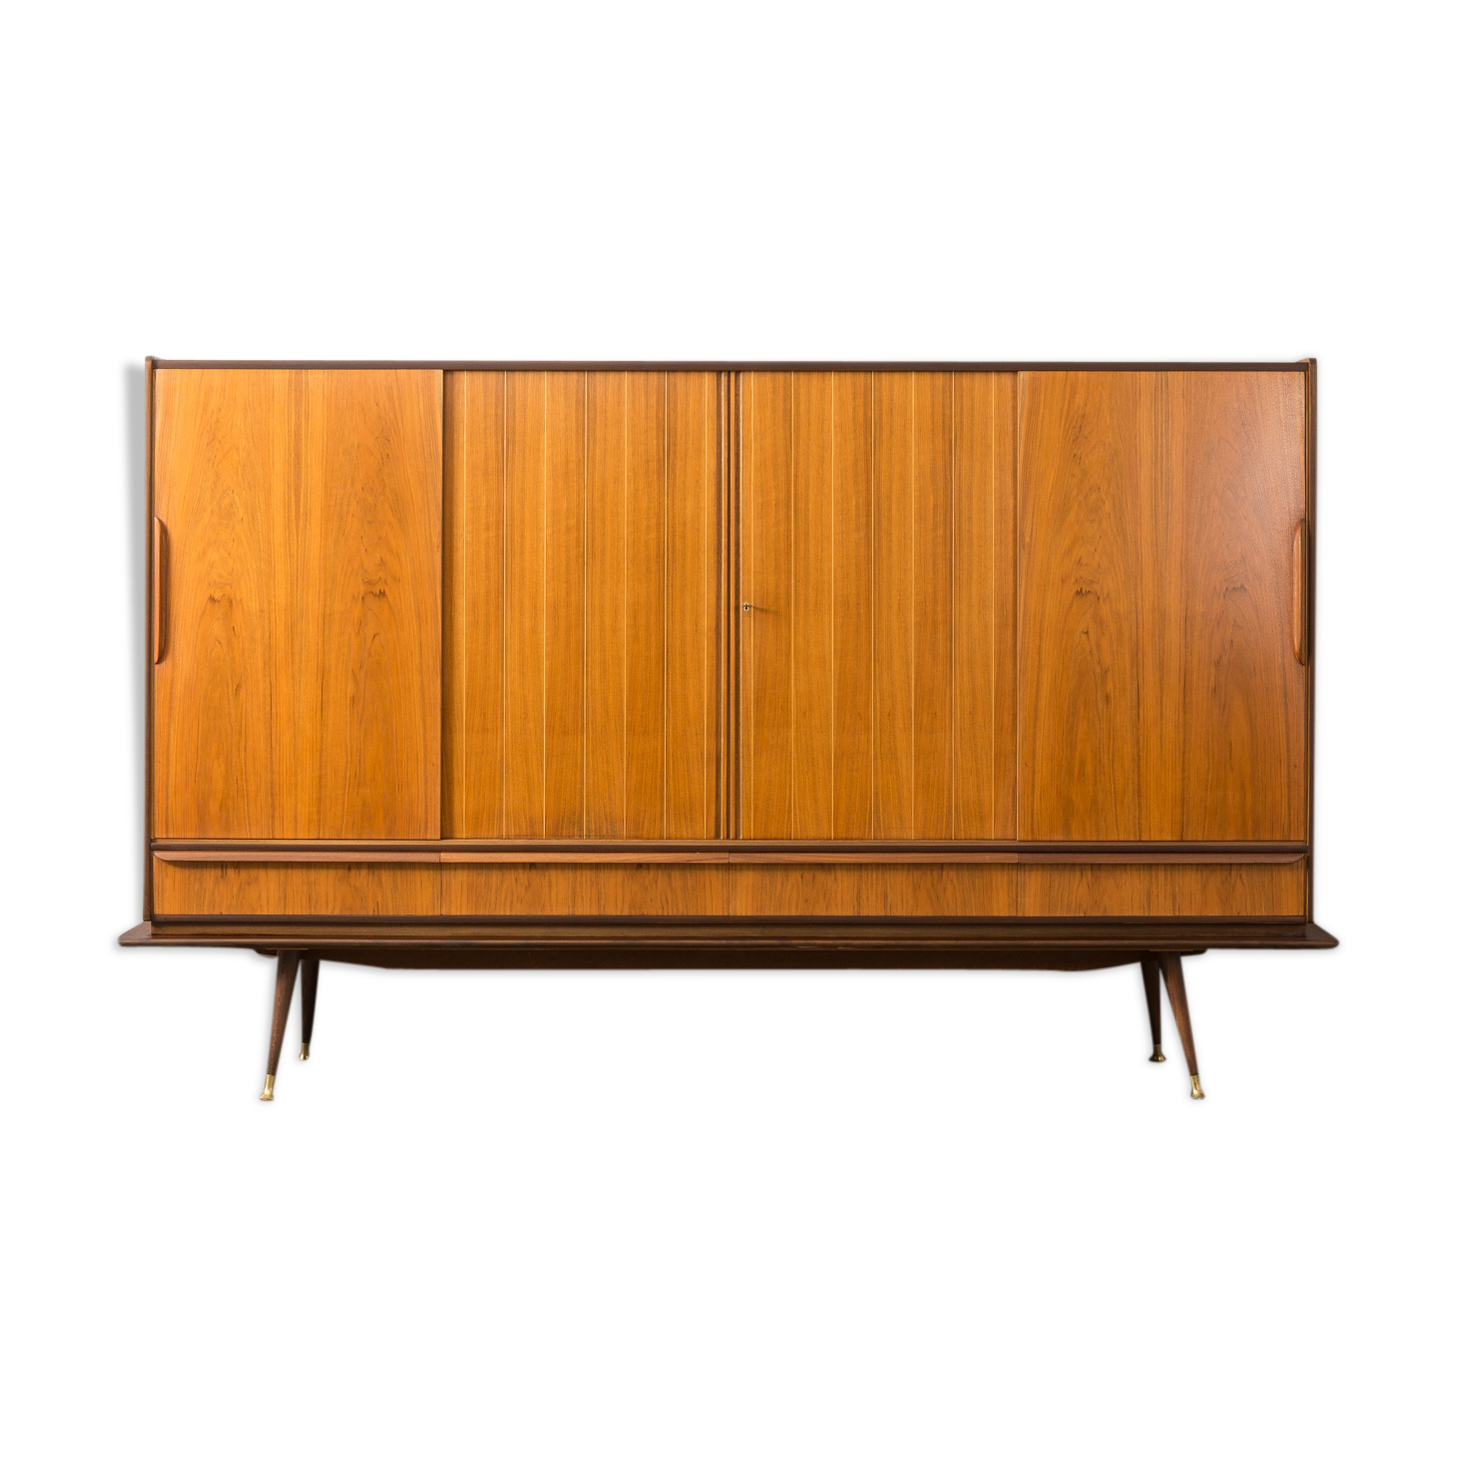 Buffet TV Cabinet From The 1950s   Wood   Wooden   Vintage ...